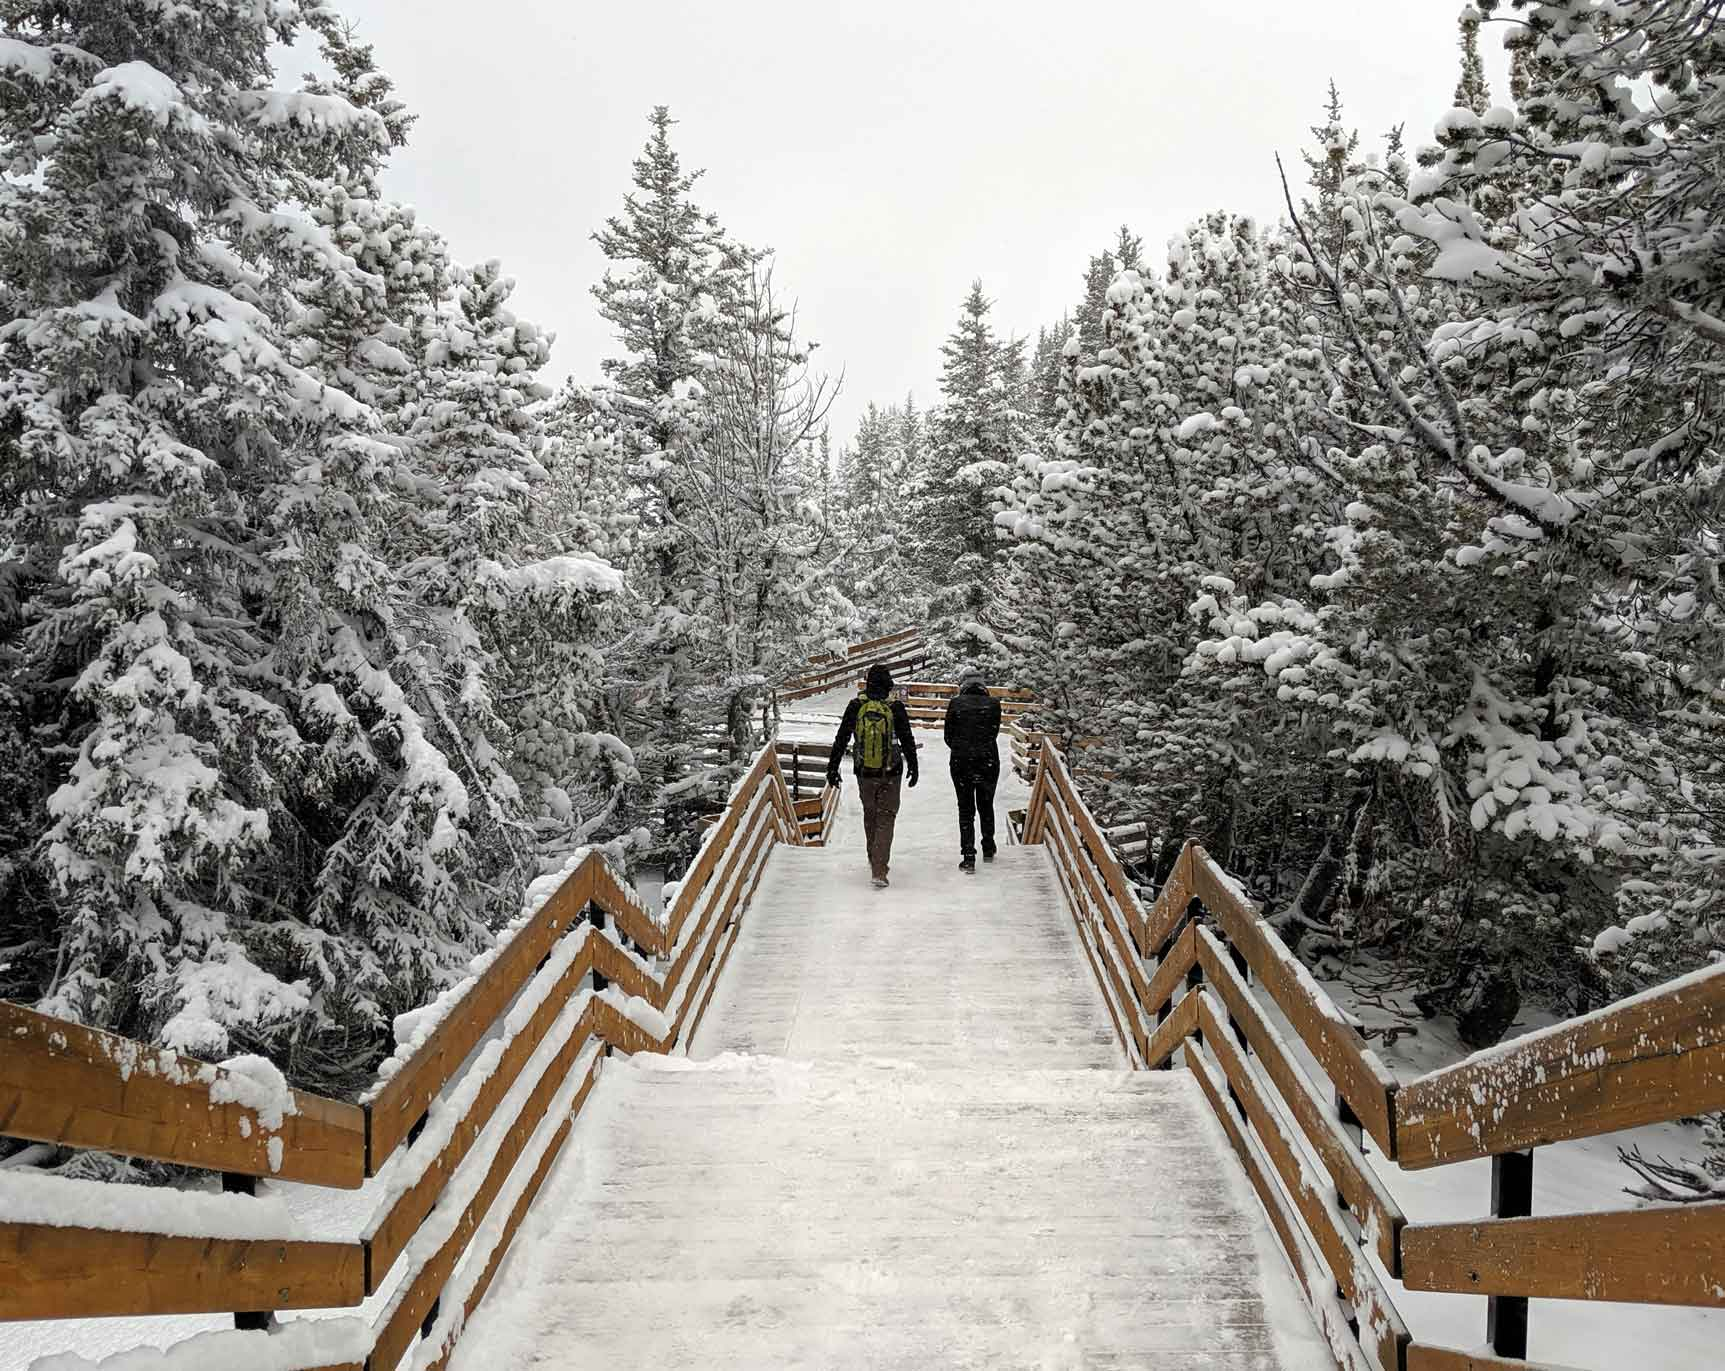 Two people walk along the snowy boardwalk at the top of the Banff Gondola